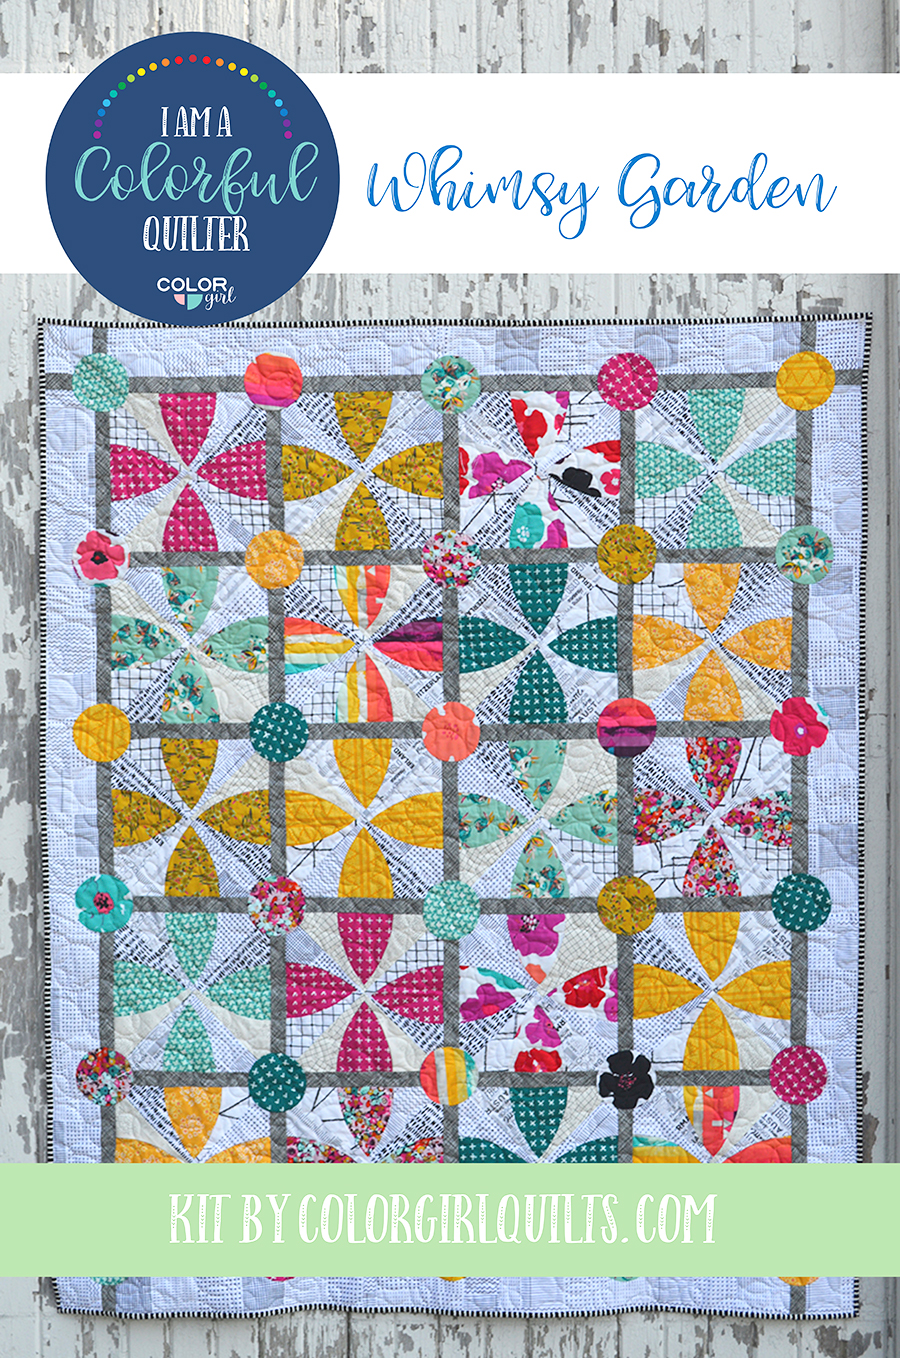 Whimsy Garden quilt pattern kit with fabric sold by Color Girl Quilts